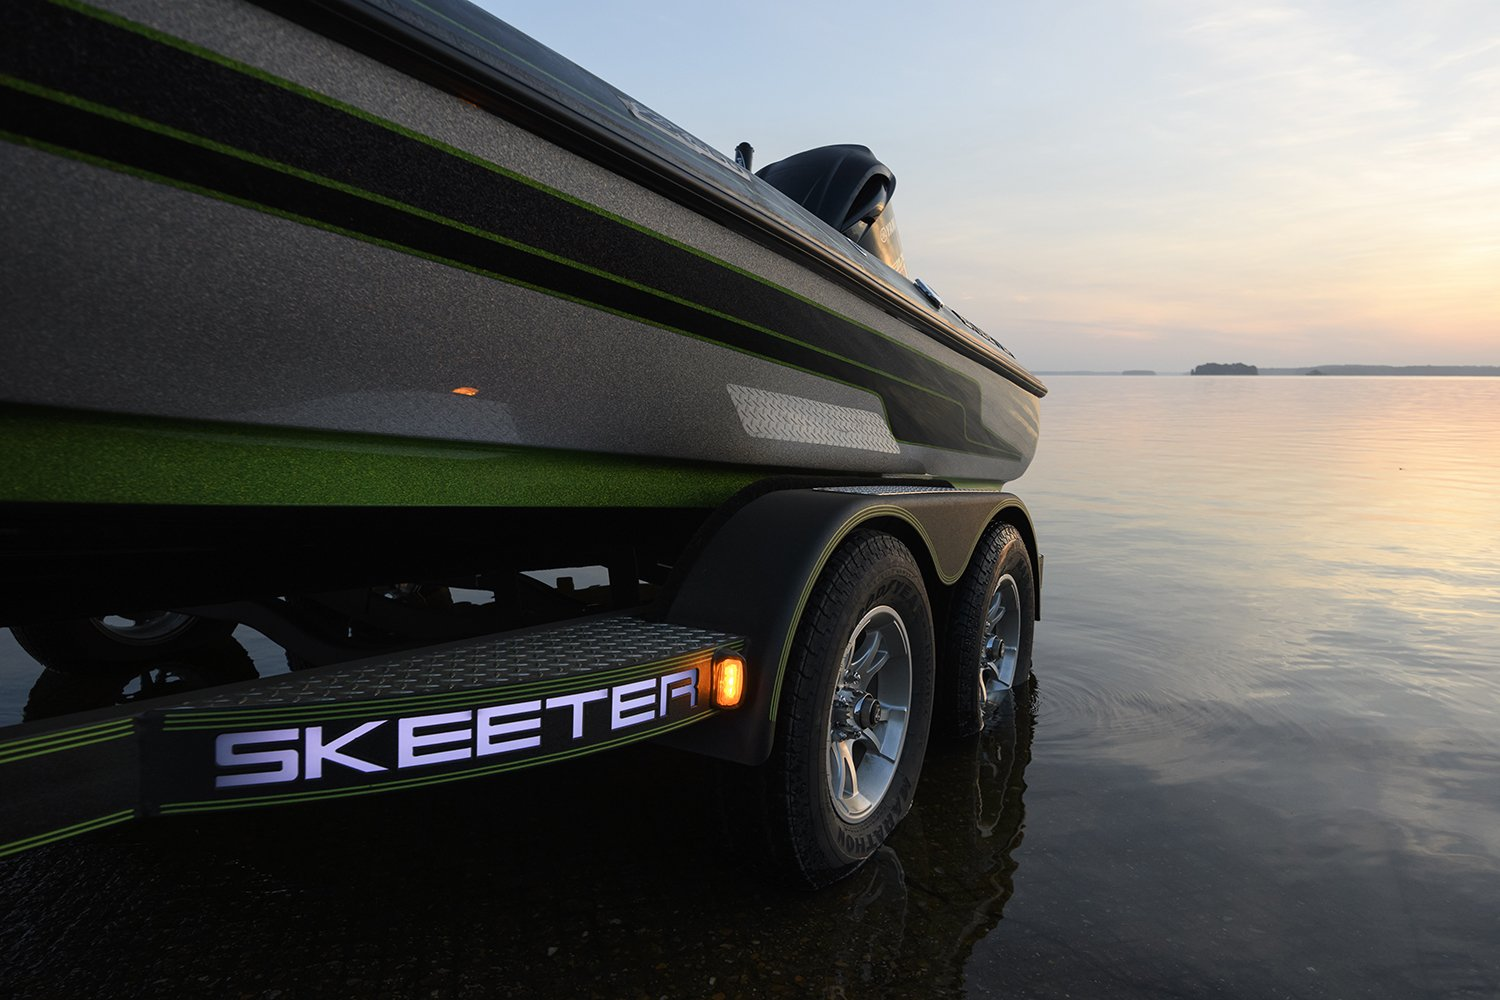 2018 Skeeter ZX250 Bass Boat For Sale